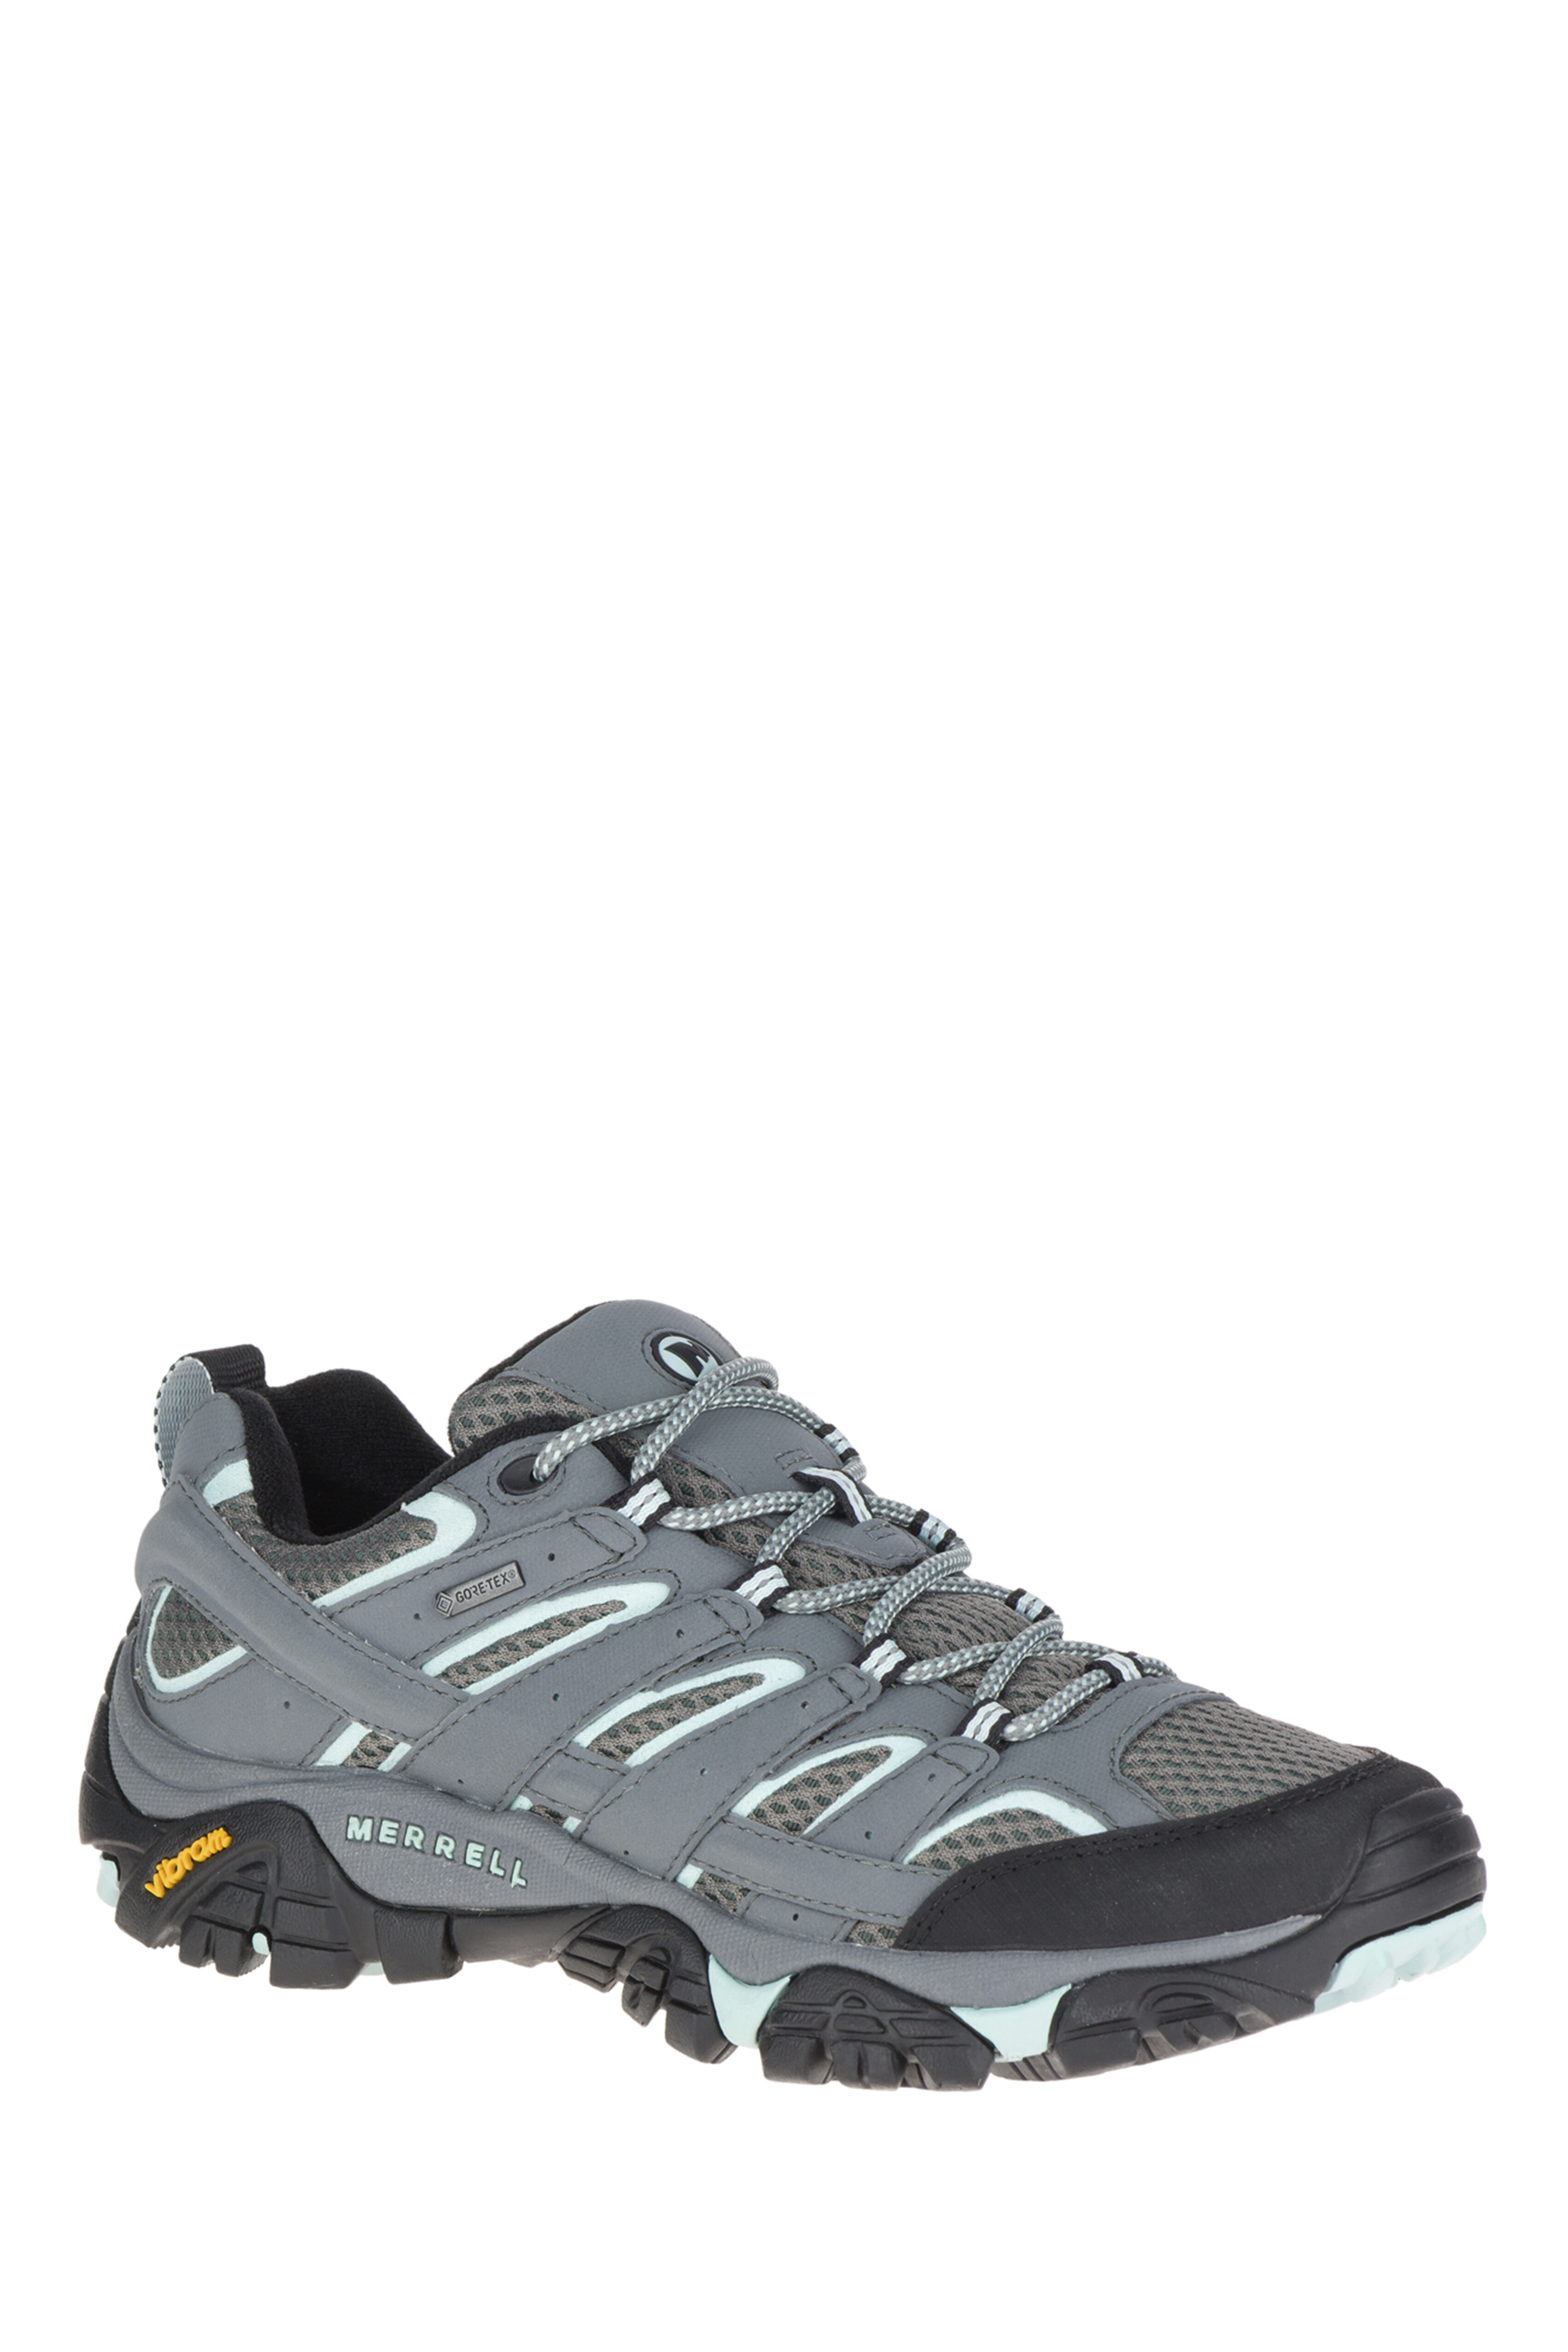 merrell womens moab 2 gtx low hiking shoes sedona sage limited